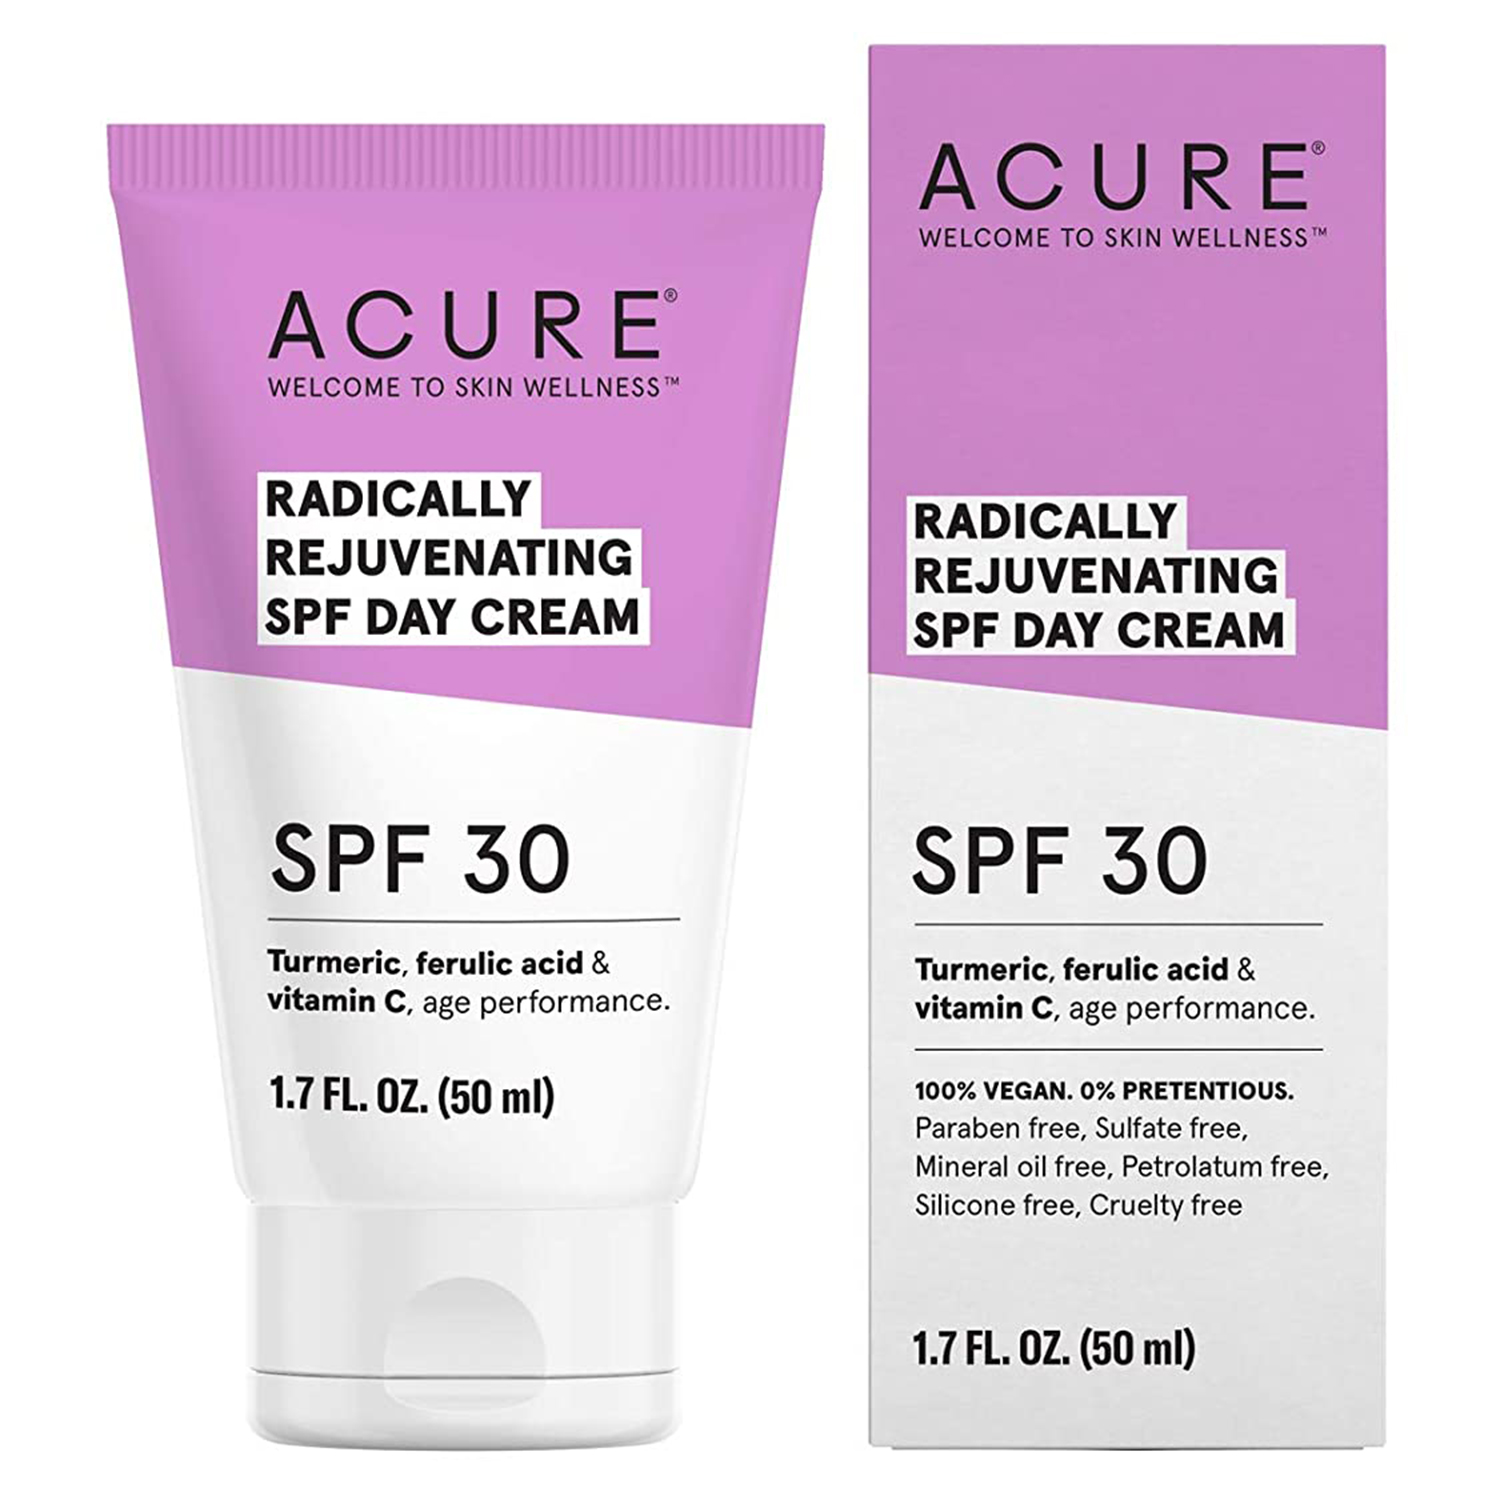 Best Budget Organic Option: Acure Radically Rejuvenating Day Cream SPF 30